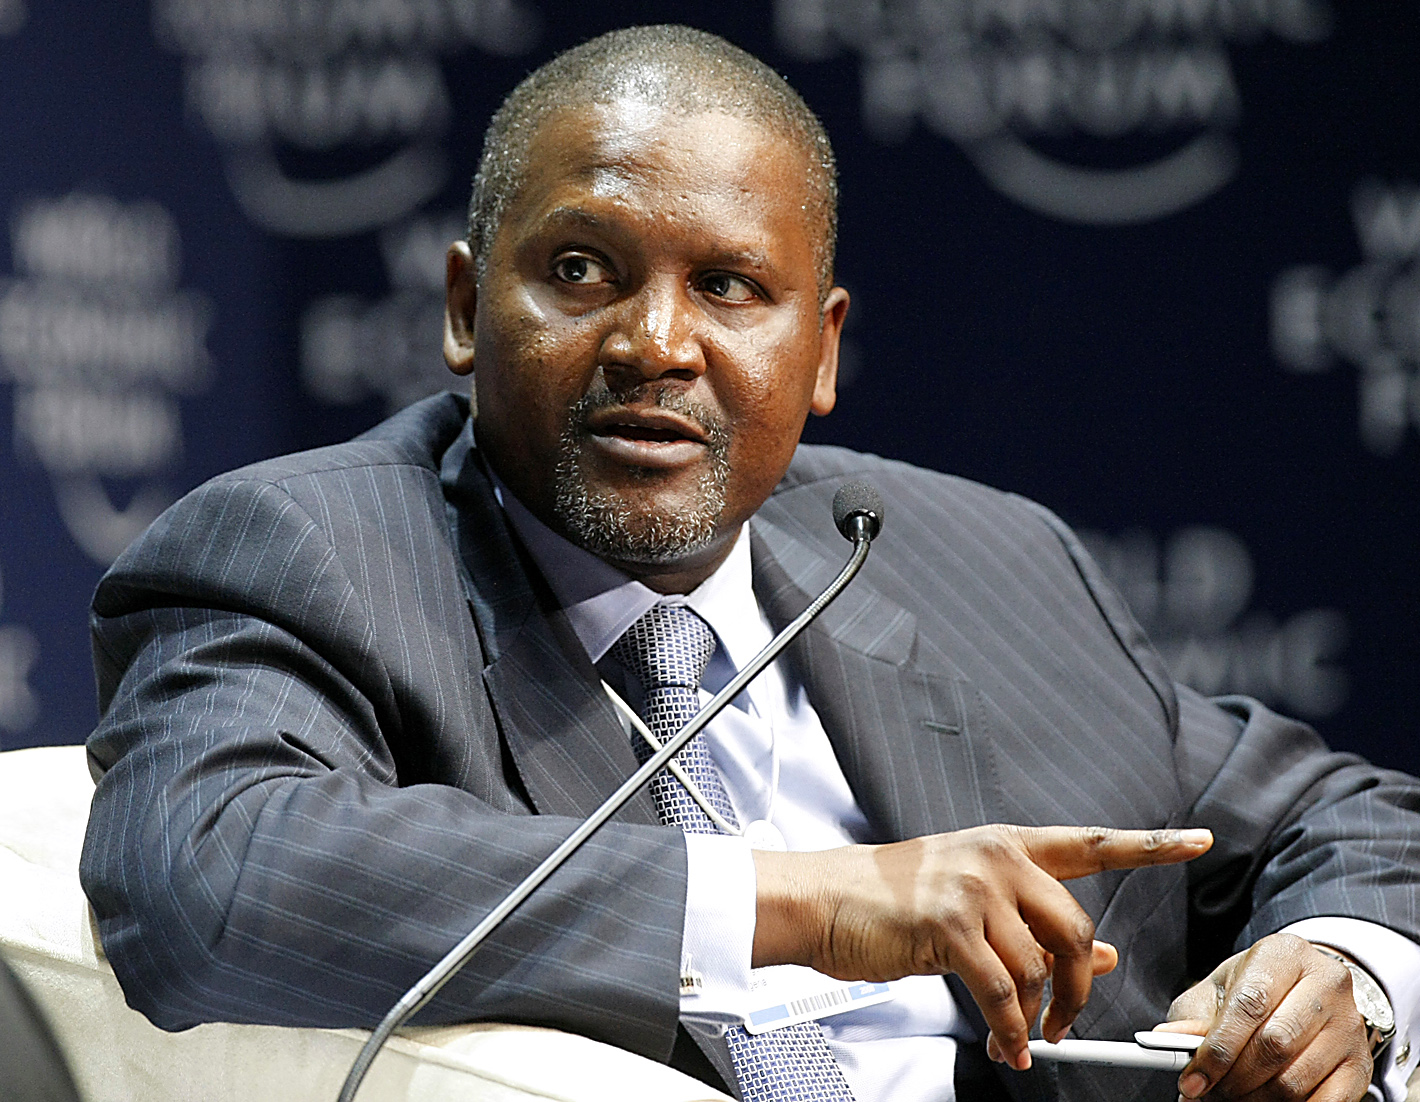 Dangote reportedly loses N240 billion in five hours due to coronavirus, Dangote reportedly loses N240 billion in five hours due to coronavirus, Latest Nigeria News, Daily Devotionals & Celebrity Gossips - Chidispalace